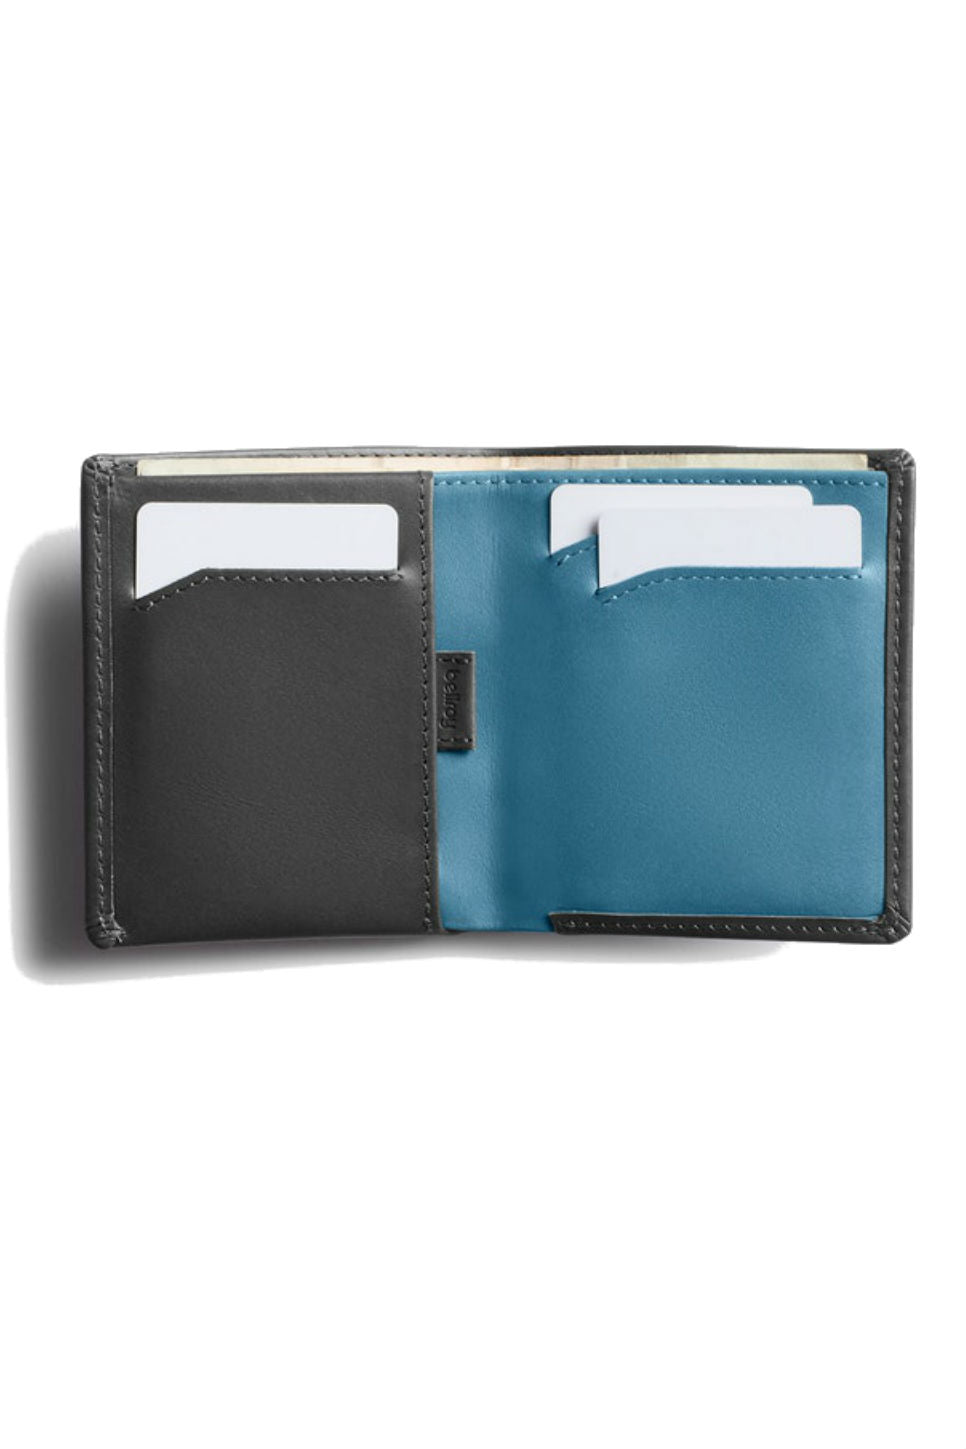 Bellroy - RFID Note Sleeve - Charcoal - Inside